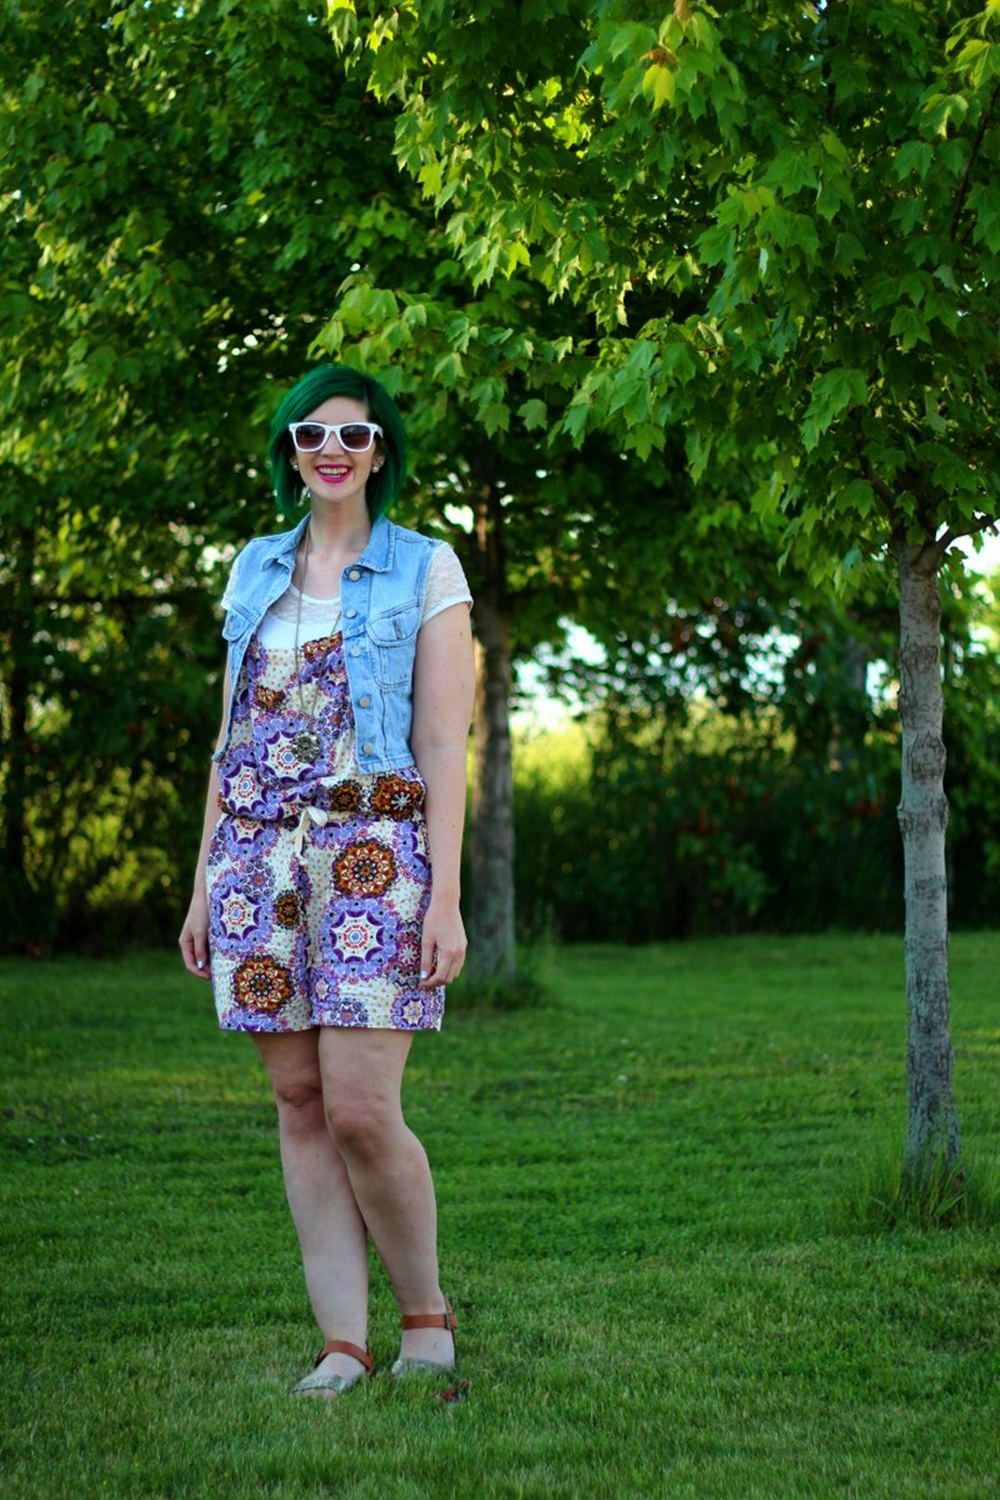 Outfit: purple boho romper overalls, white lace tee, light wash denim vest, green hair, purple lipstick, white sunglasses, Target glitter sandals